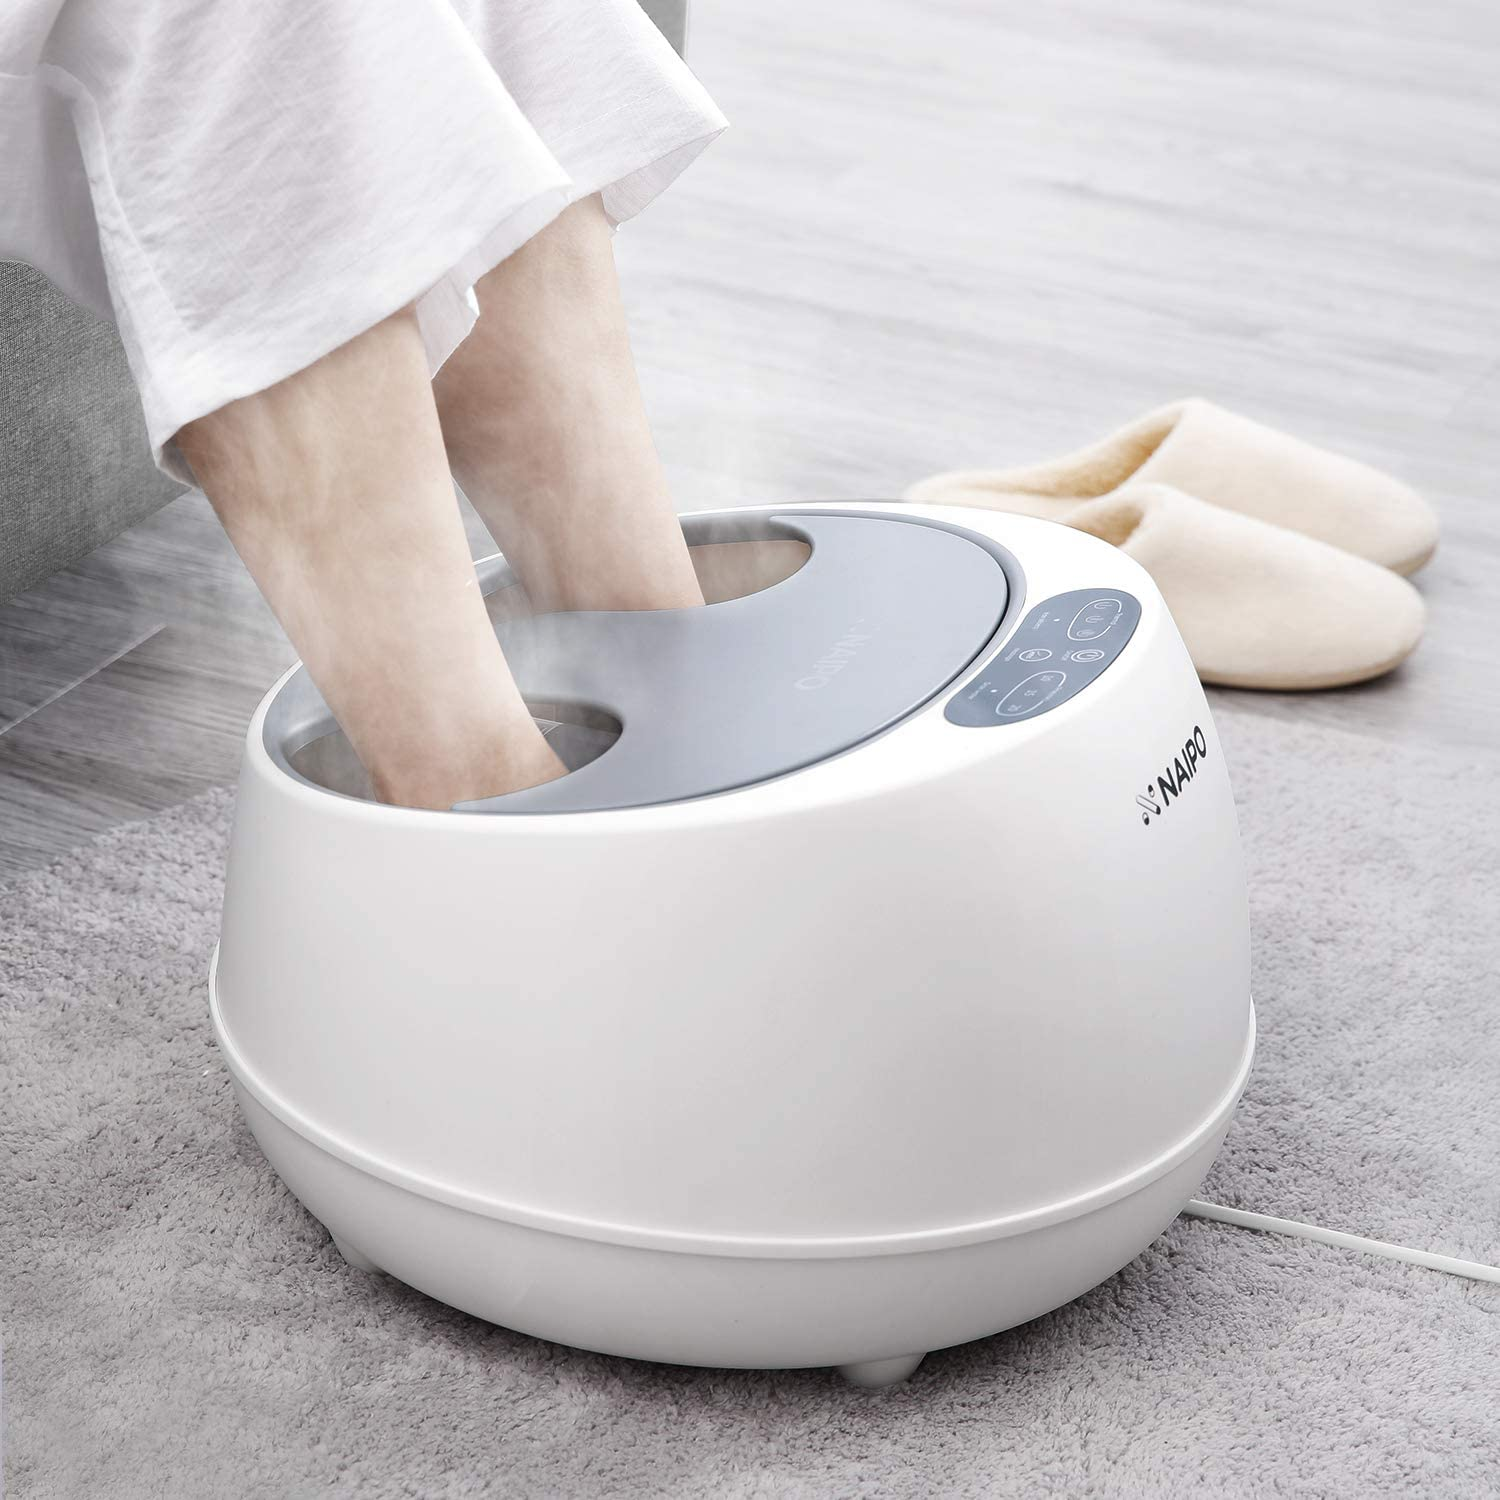 Best Home Foot Spas